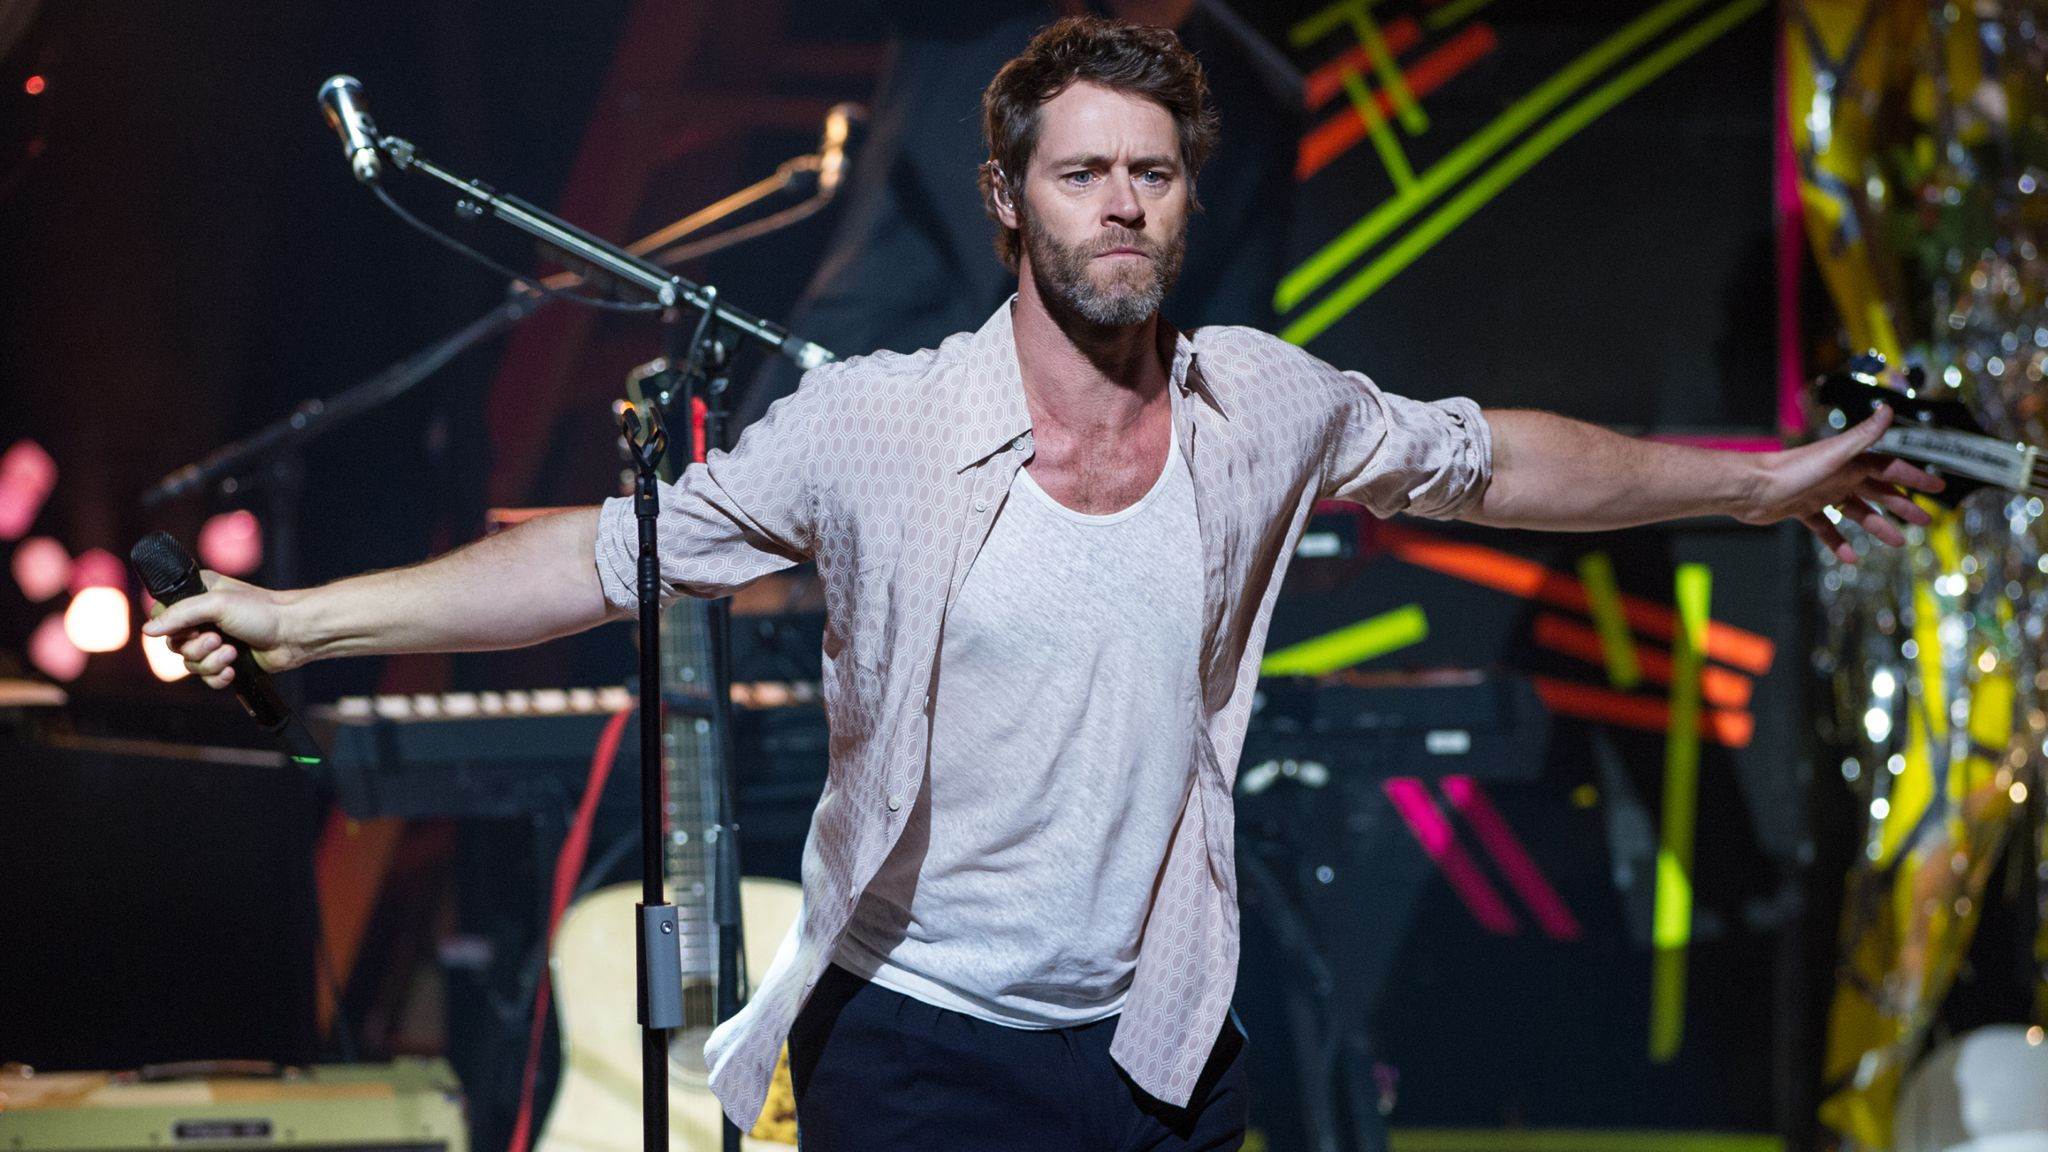 Howard Donald of Take That performs during the 2015 Apple Music Festival at The Roundhouse on September 20, 2015 in London, England